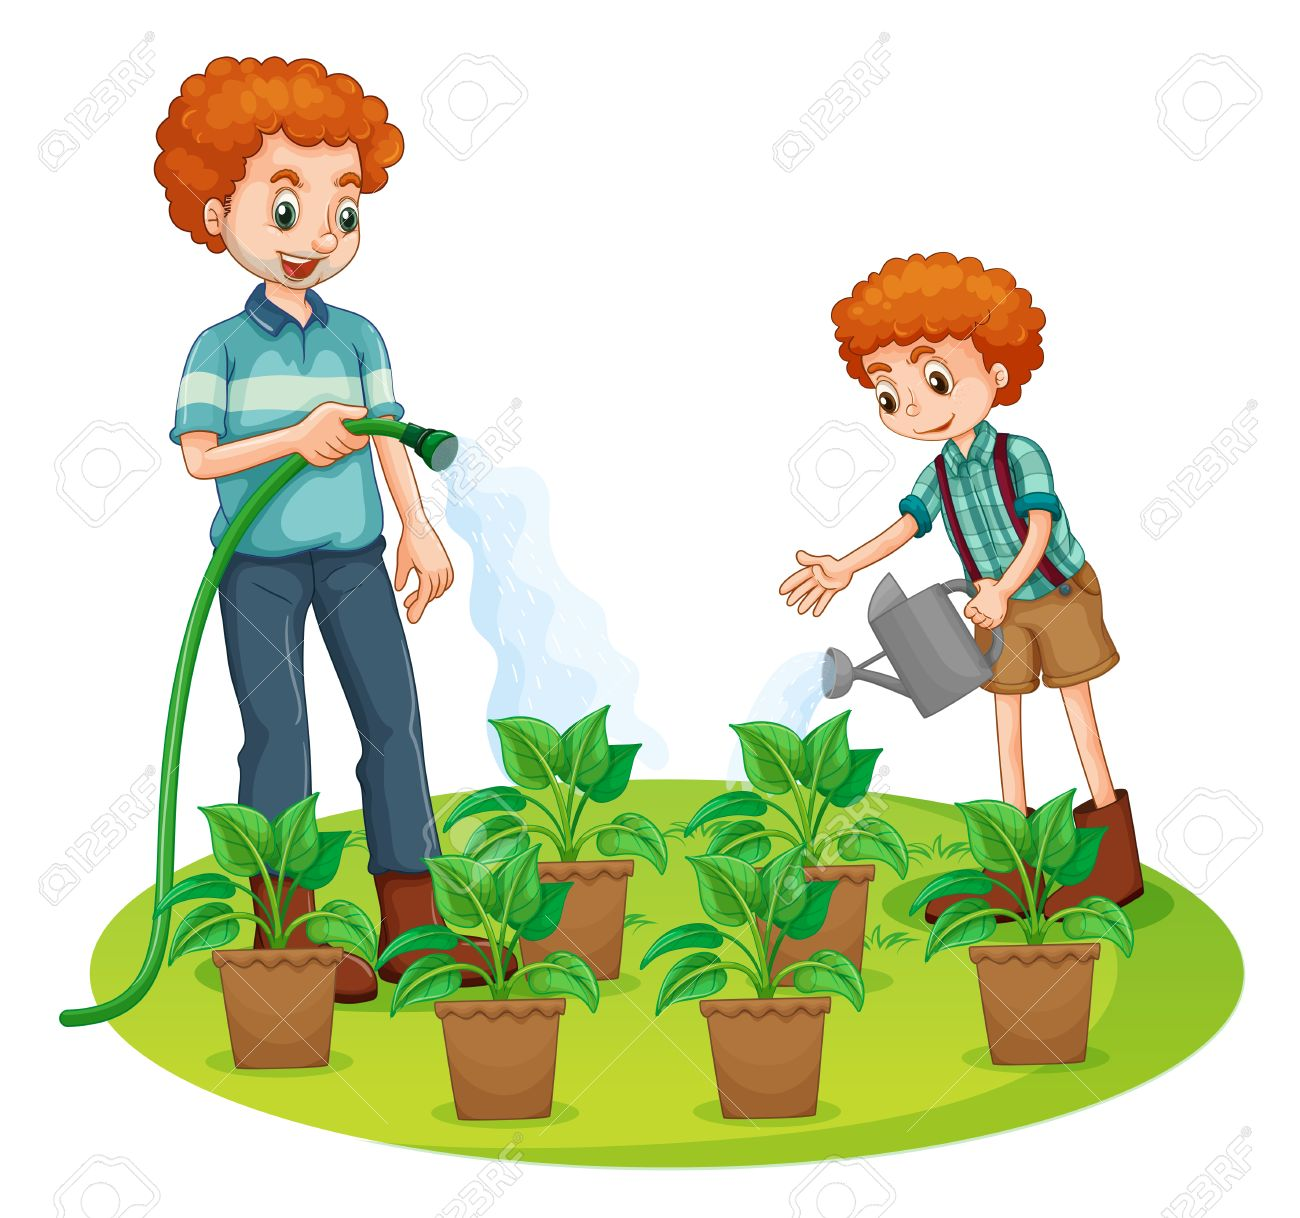 Father and son watering the plants illustration.